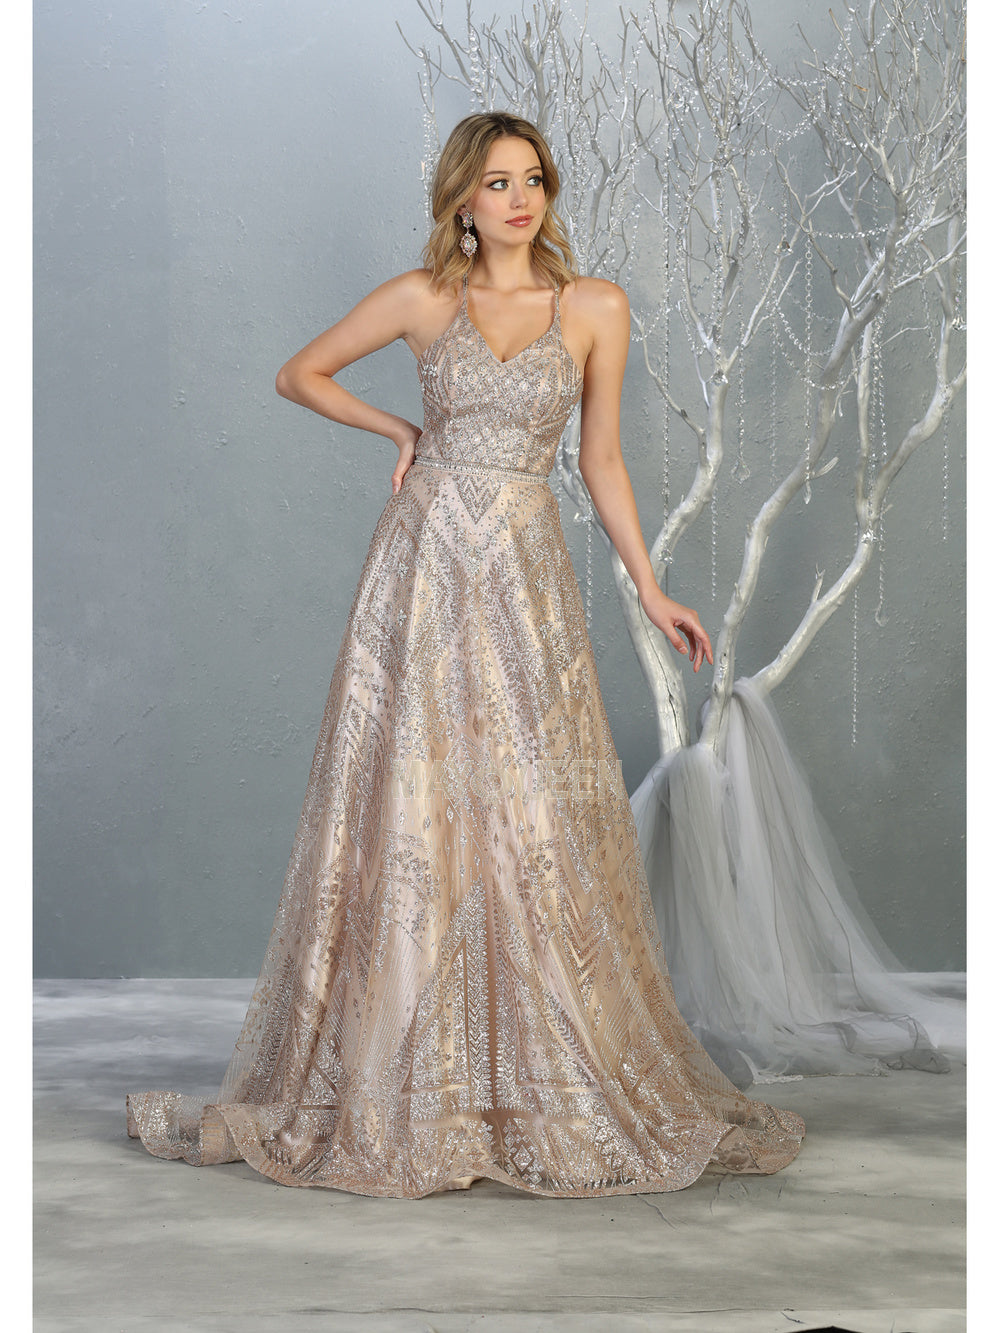 MQ 7817 - A Line Prom Gown with Full Glitter Print & Beaded Belt